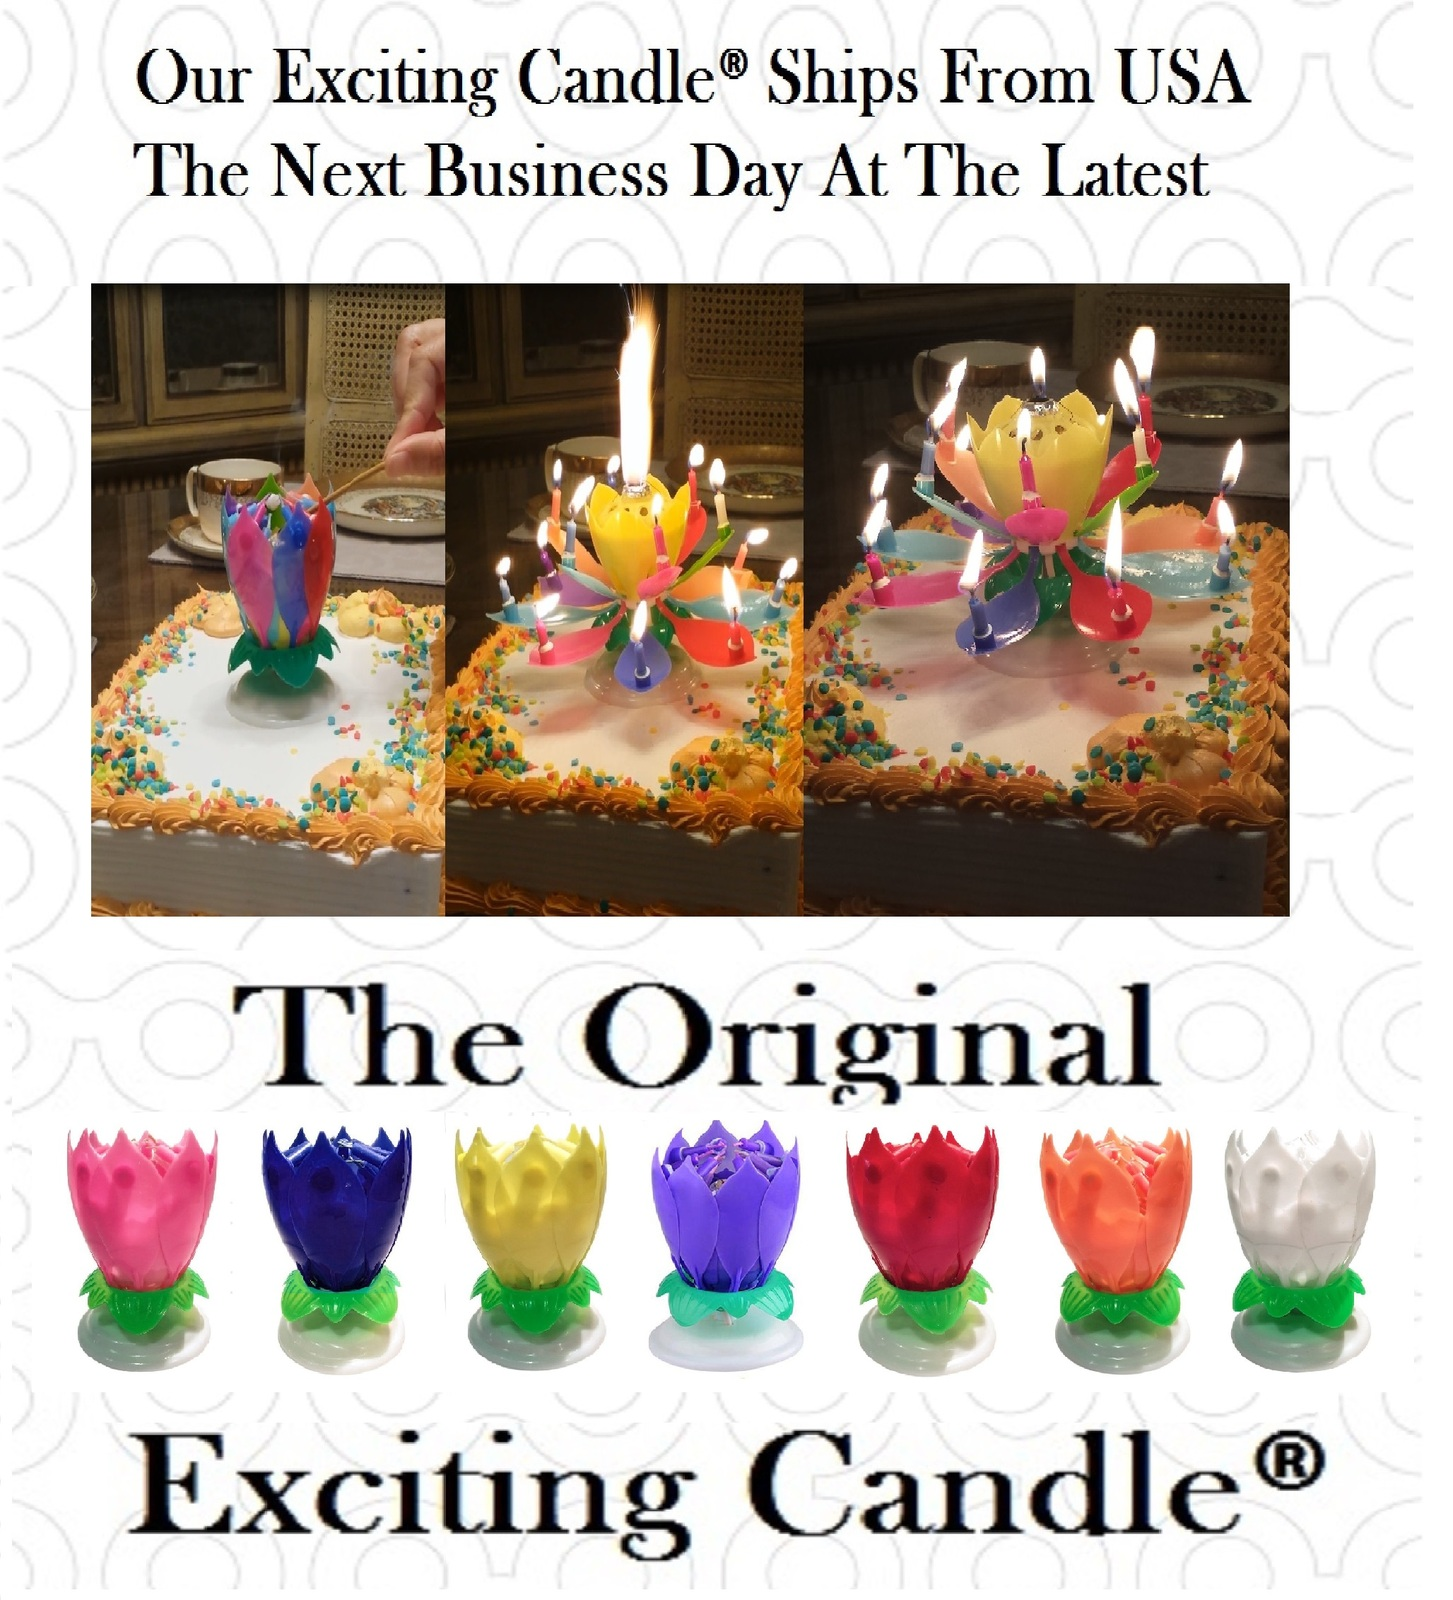 2 Rainbow Amazing Lotus Flower Happy Birthday Candle  Original EXCITING CANDLE ®